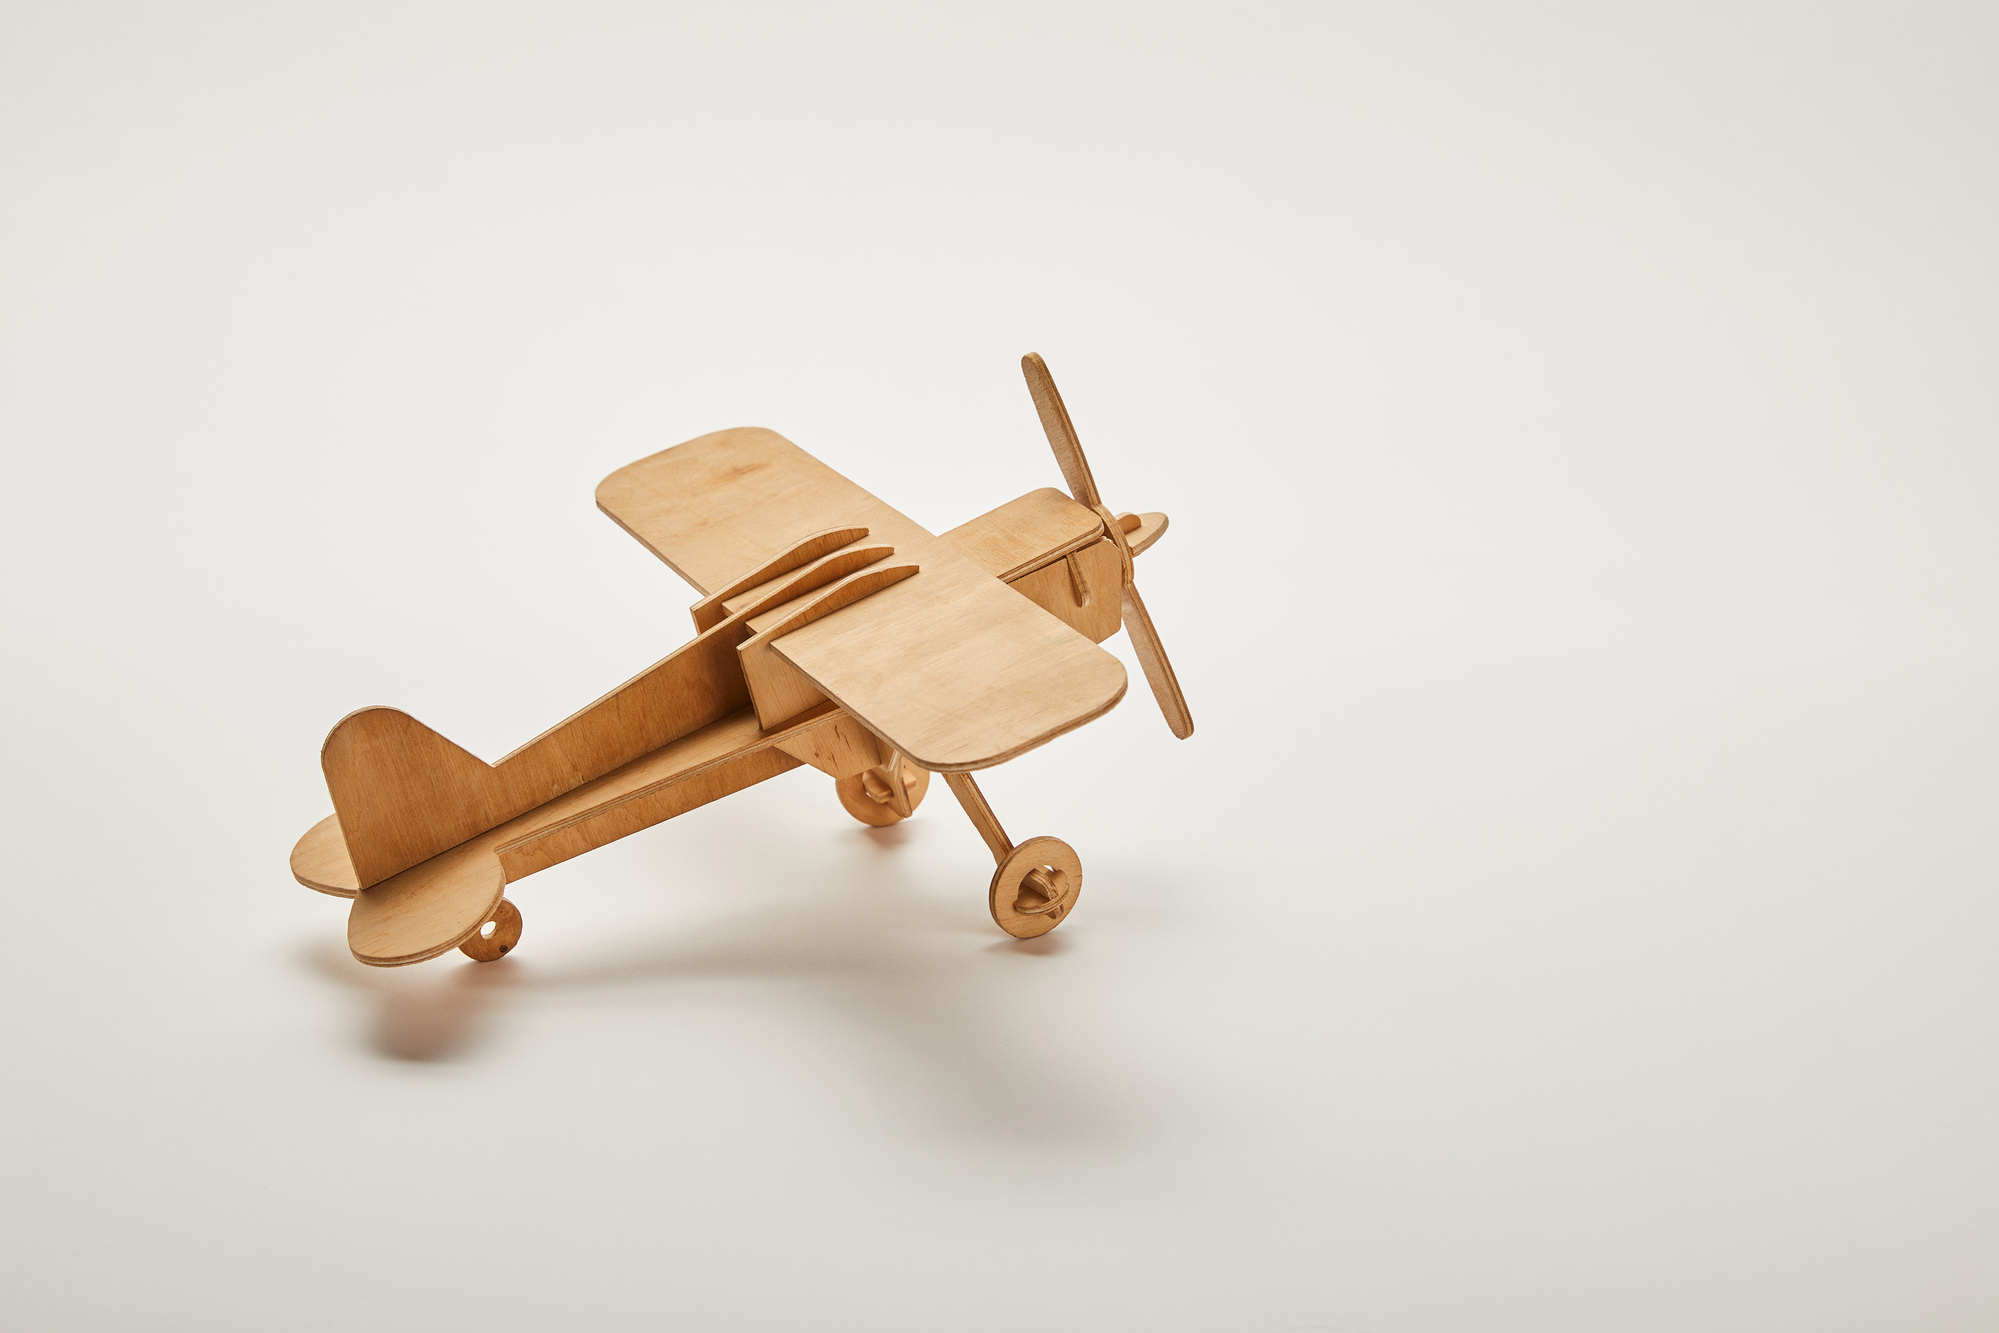 Model toy airplane